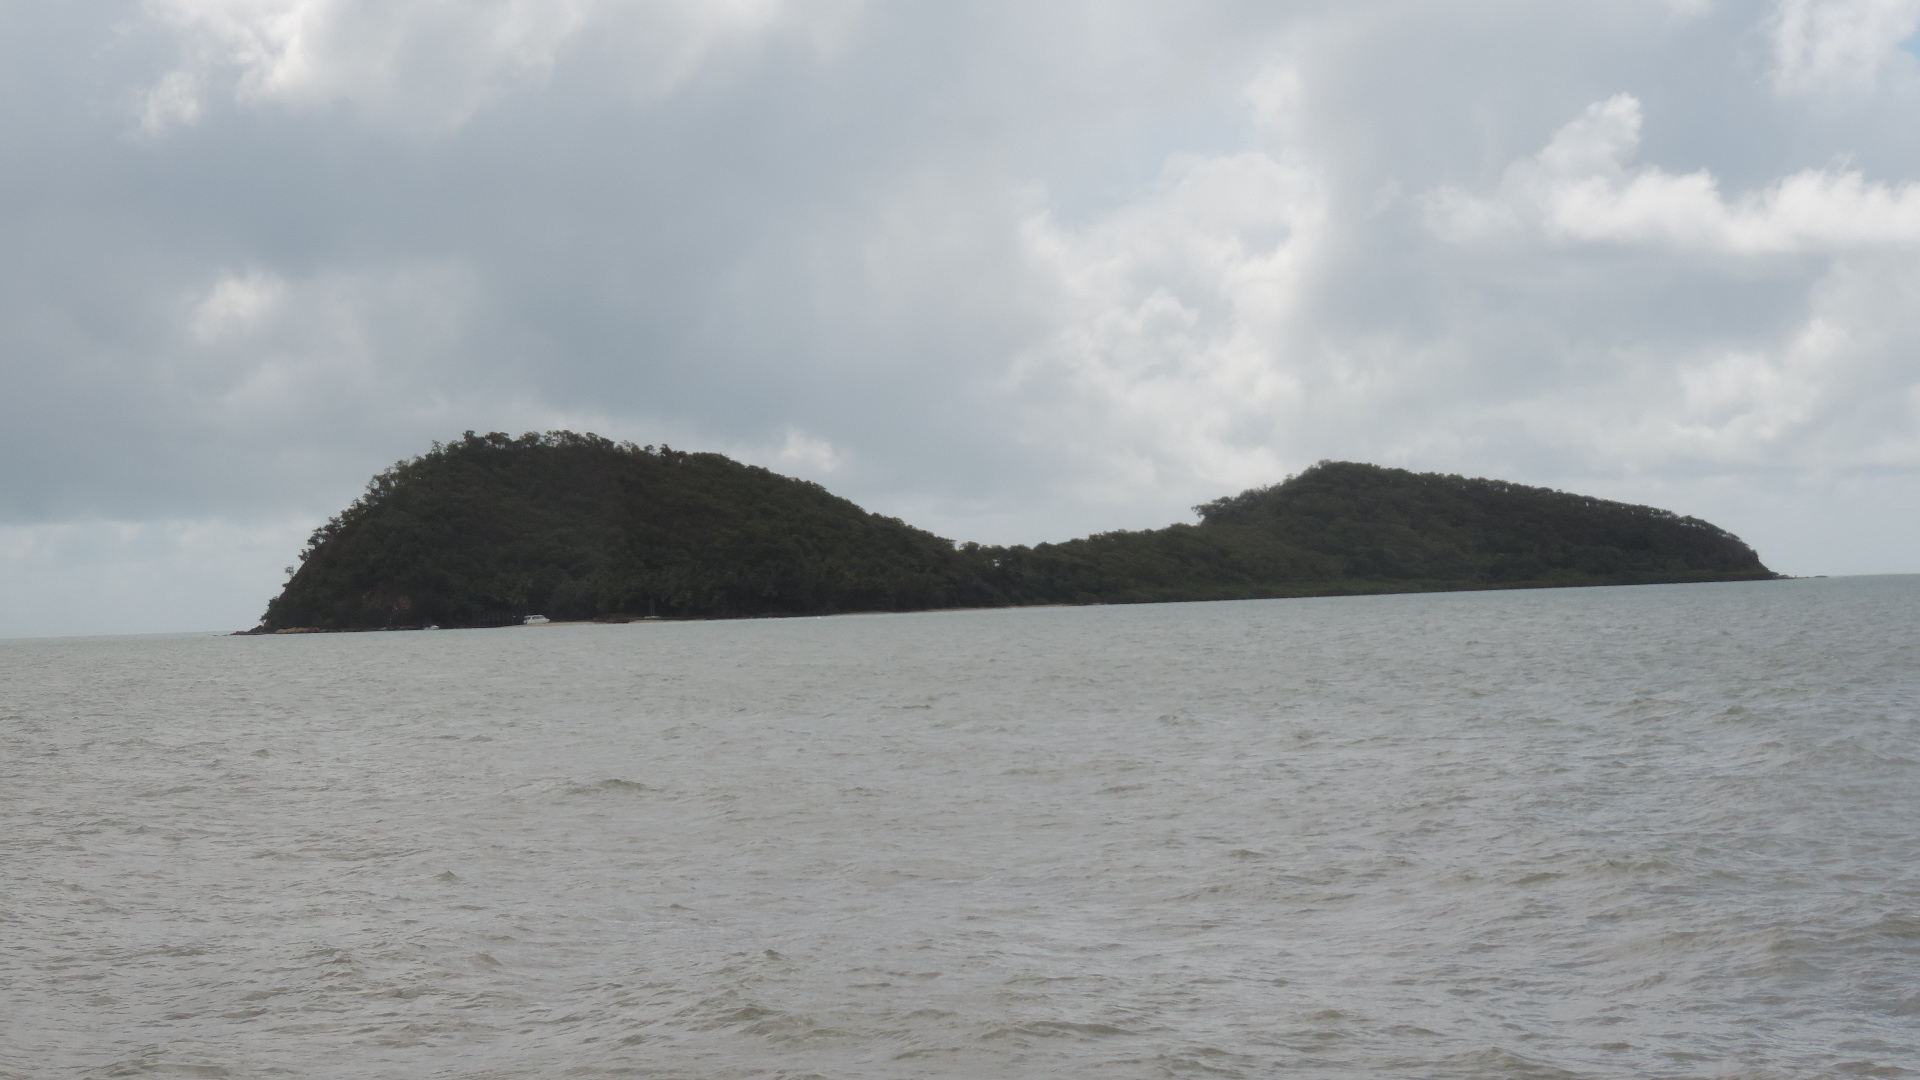 Filedouble Island Off Buchan Point As Seen From The Jetty